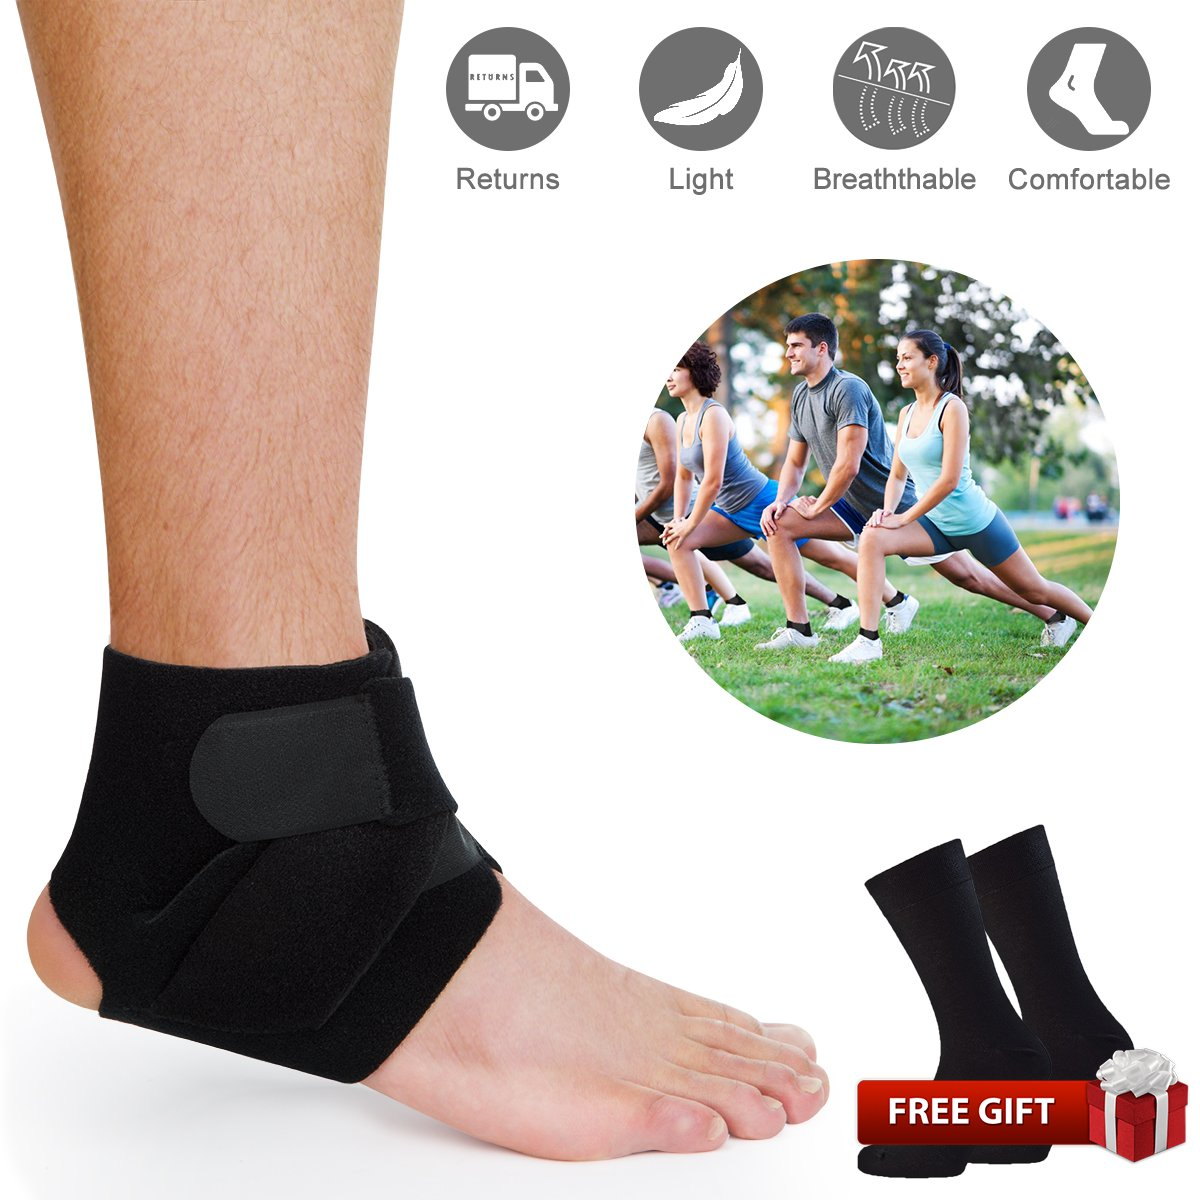 Ankle Support Brace, Ankle Stabilizer Brace Comfortable Breathable Ankle Brace Foot Sleeve Plantar with Plantar Fasciitis Foot Socks for Sports Protects Against Chronic Ankle Strain Sprains Fatigue